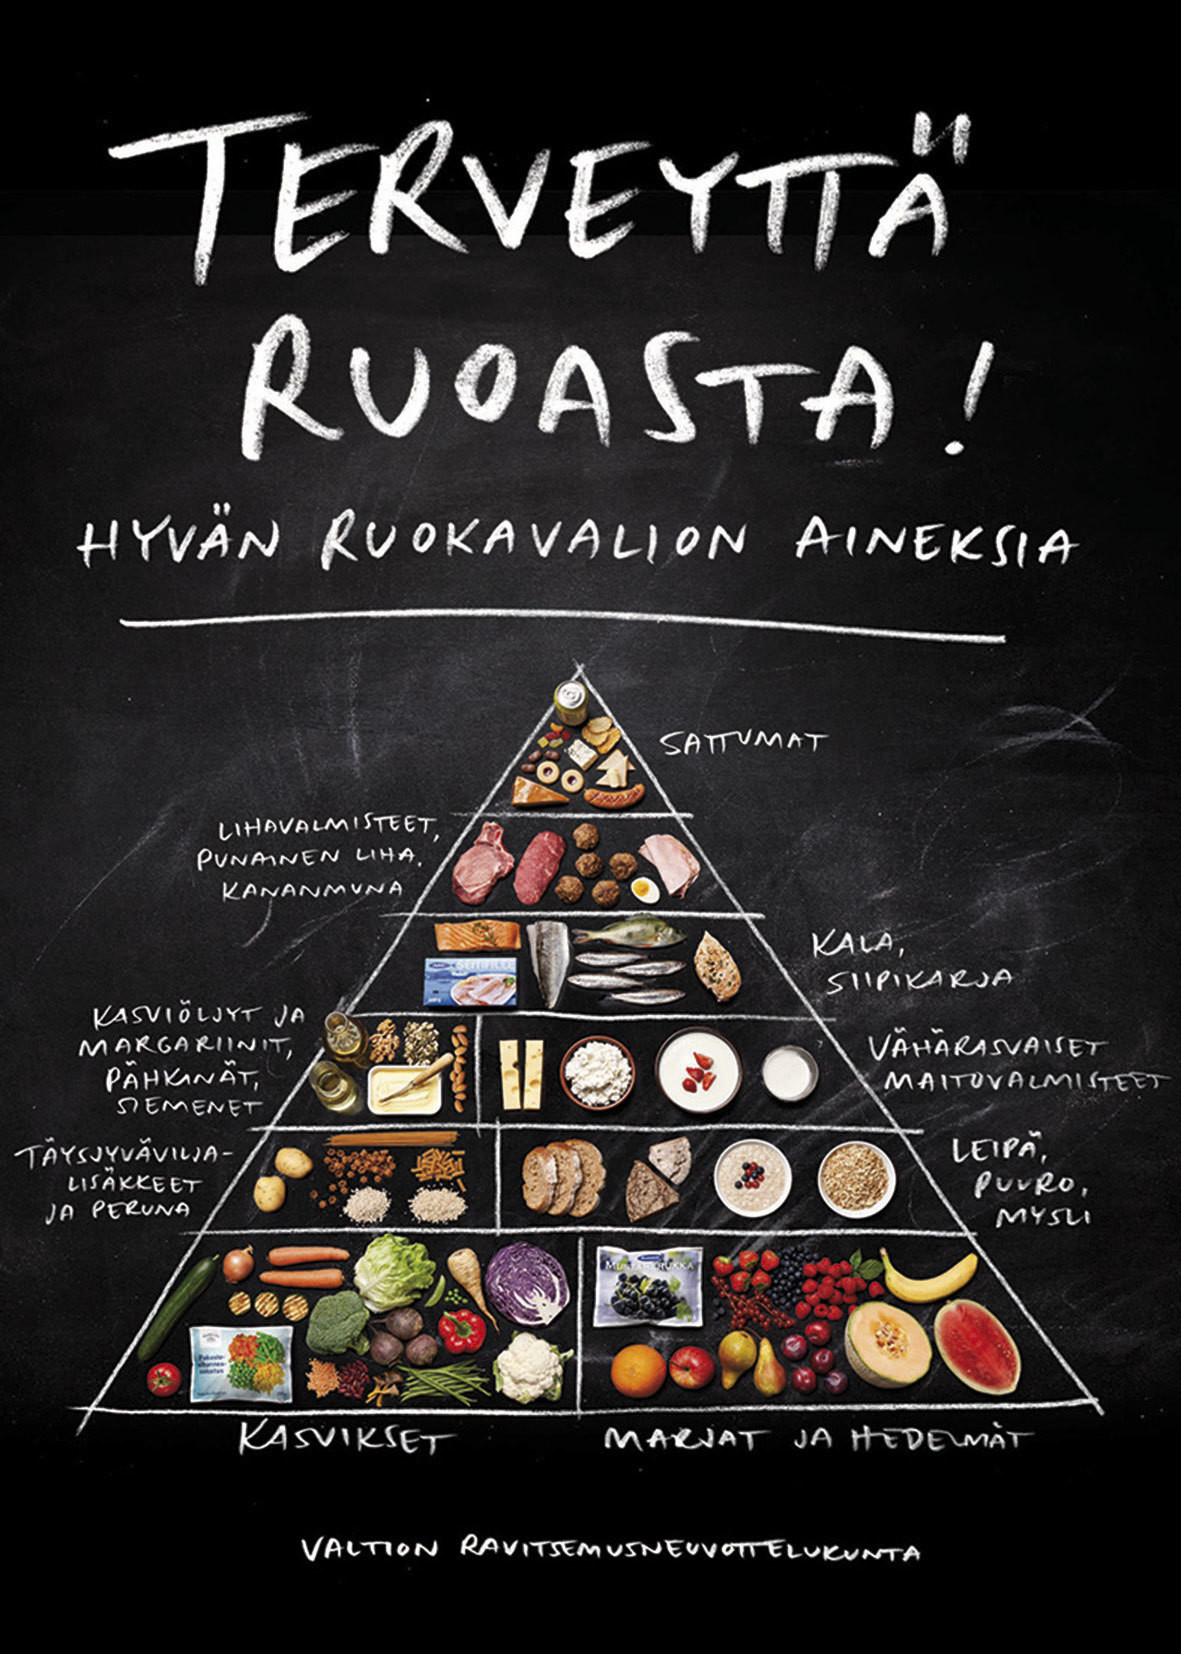 The Finnish guide to healthy eating